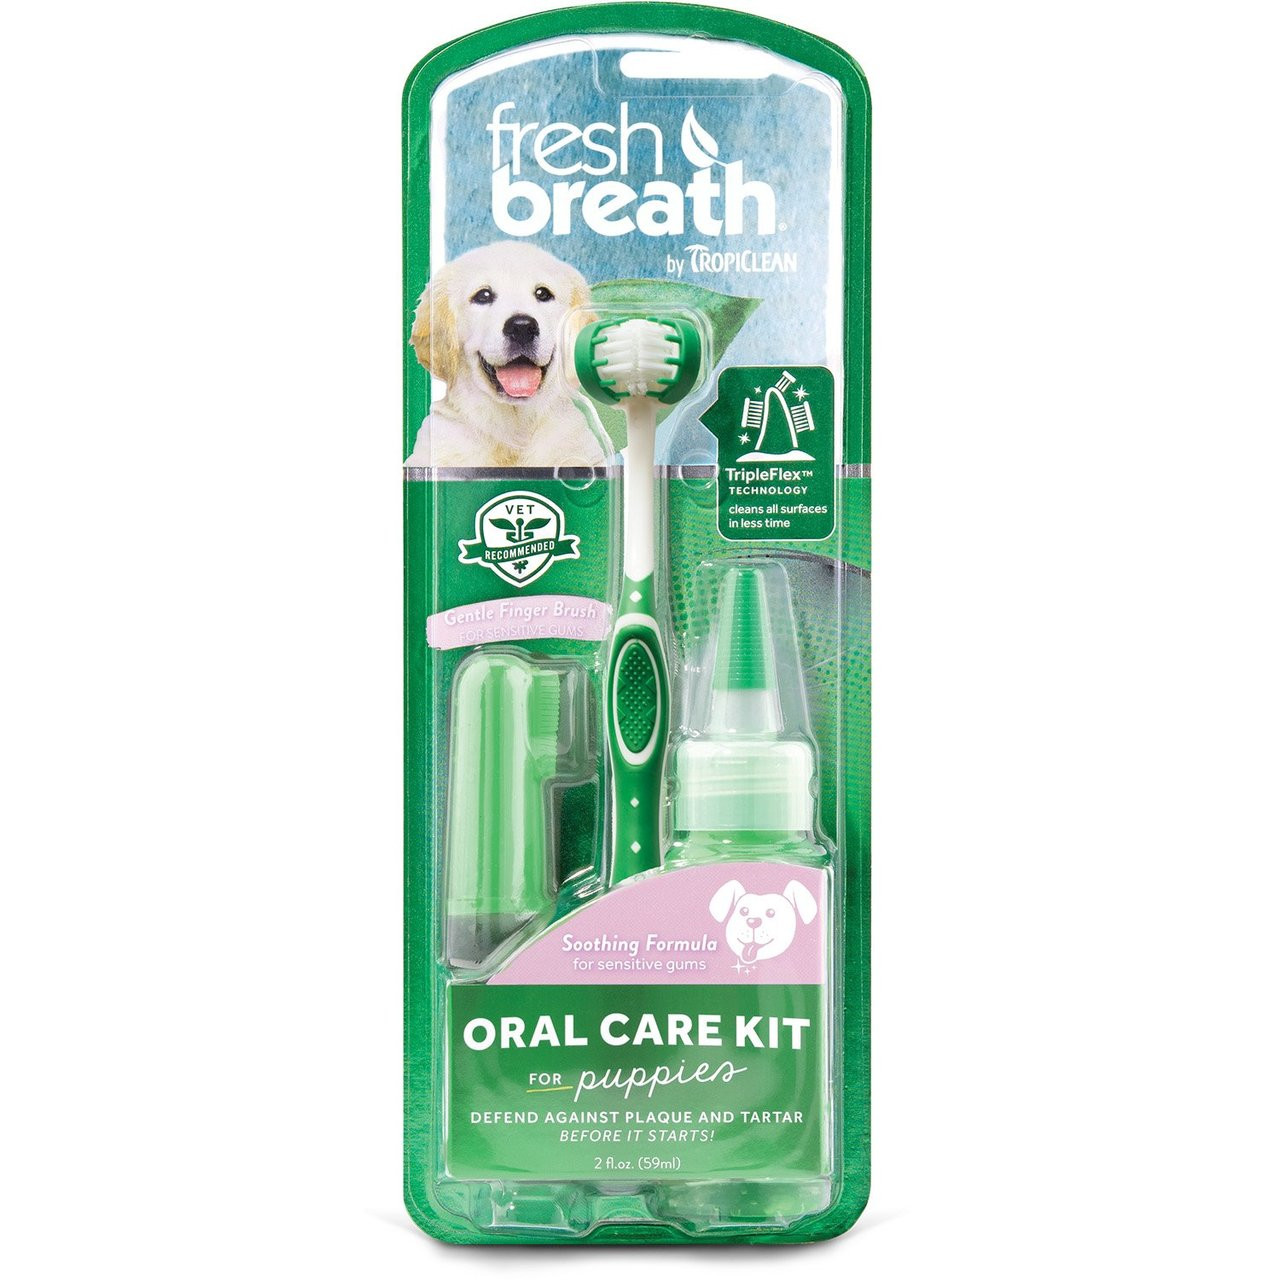 Fresh Breath Oral Care Kit for Puppies